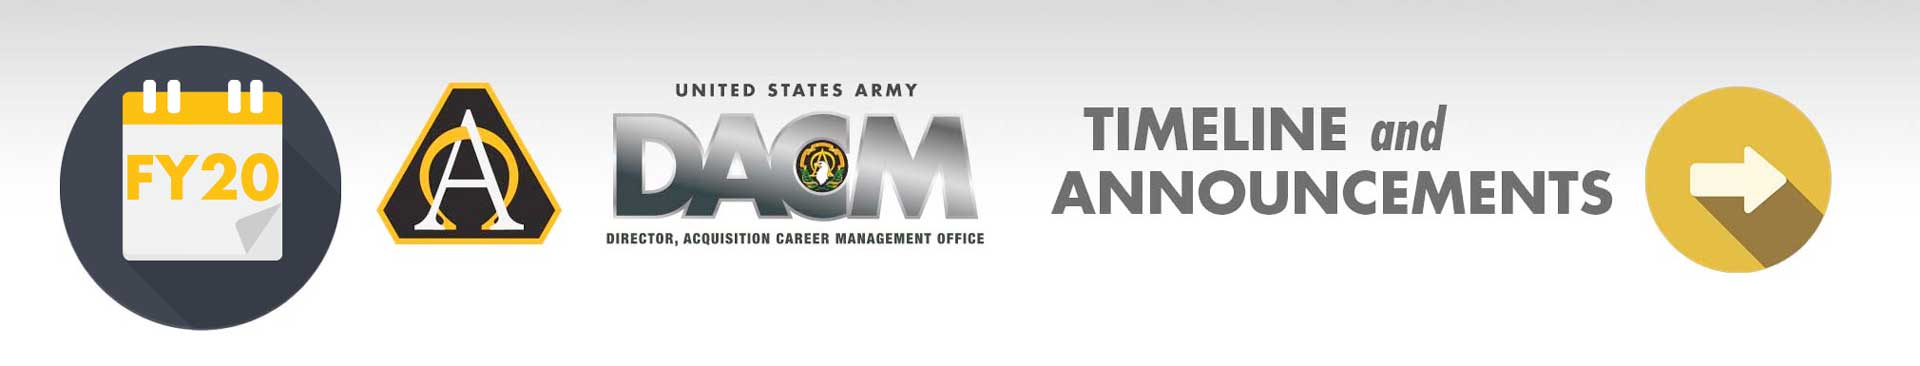 FY20 Army DACM Timeline and Announcements